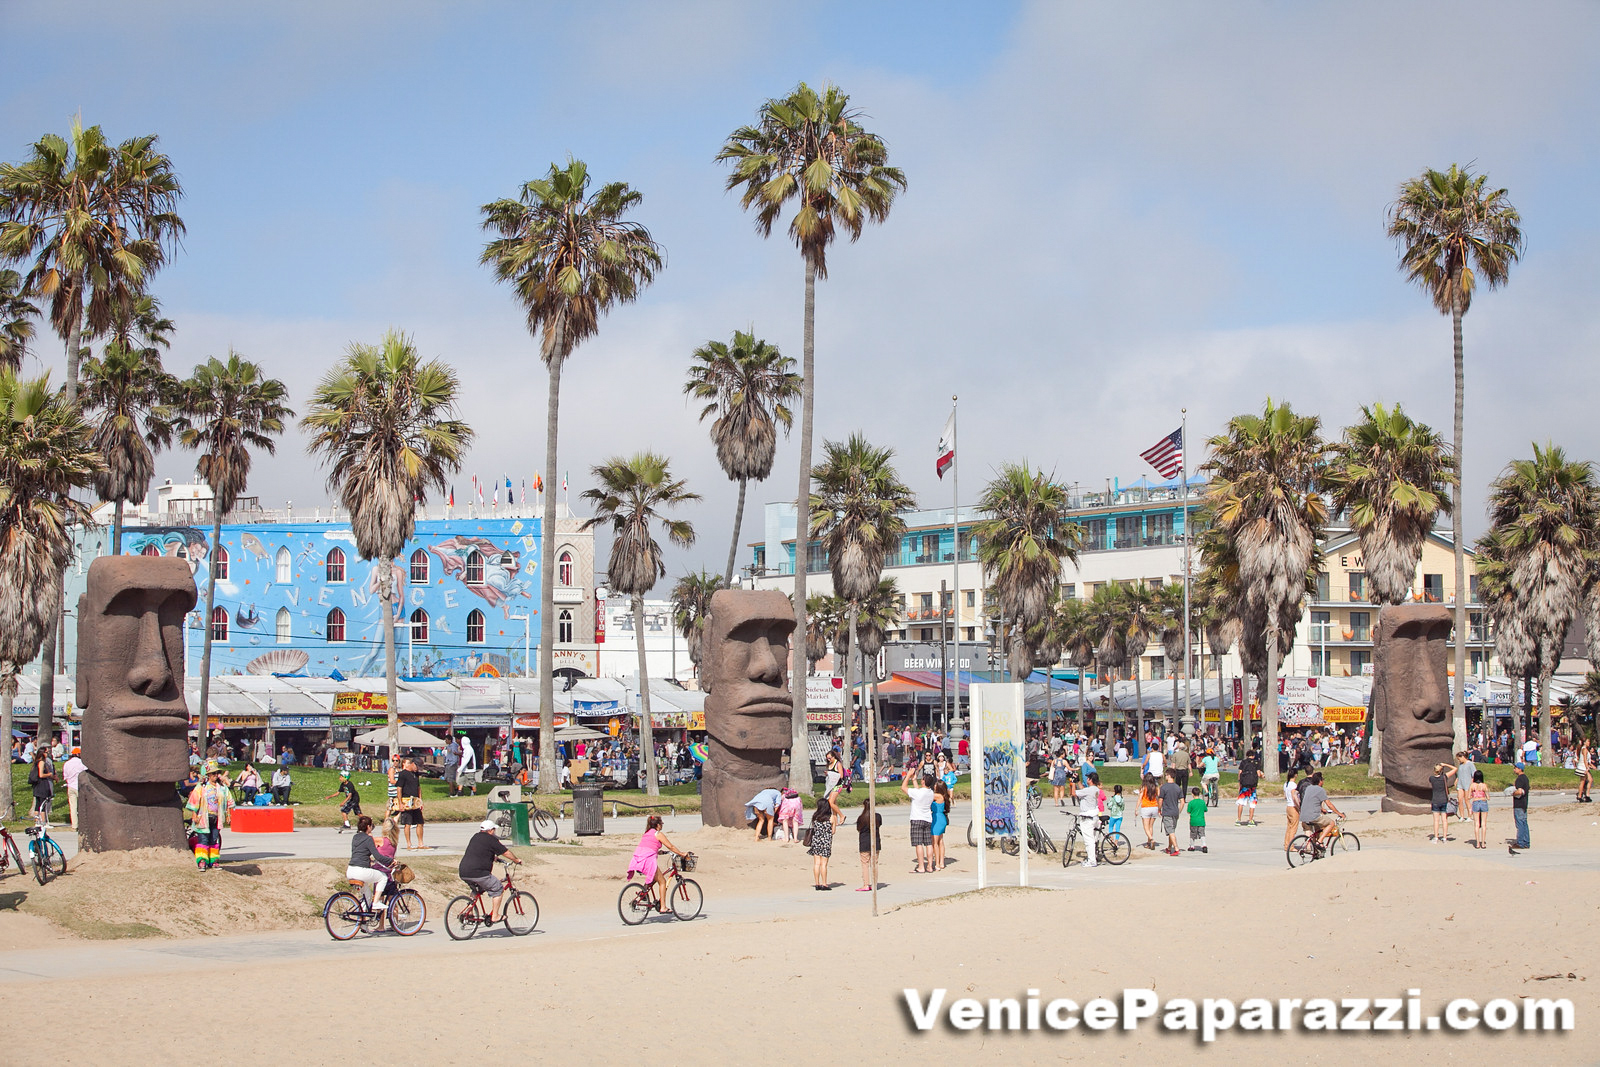 Rent Some Transport And And Explore Venice On A Bike Skate Board